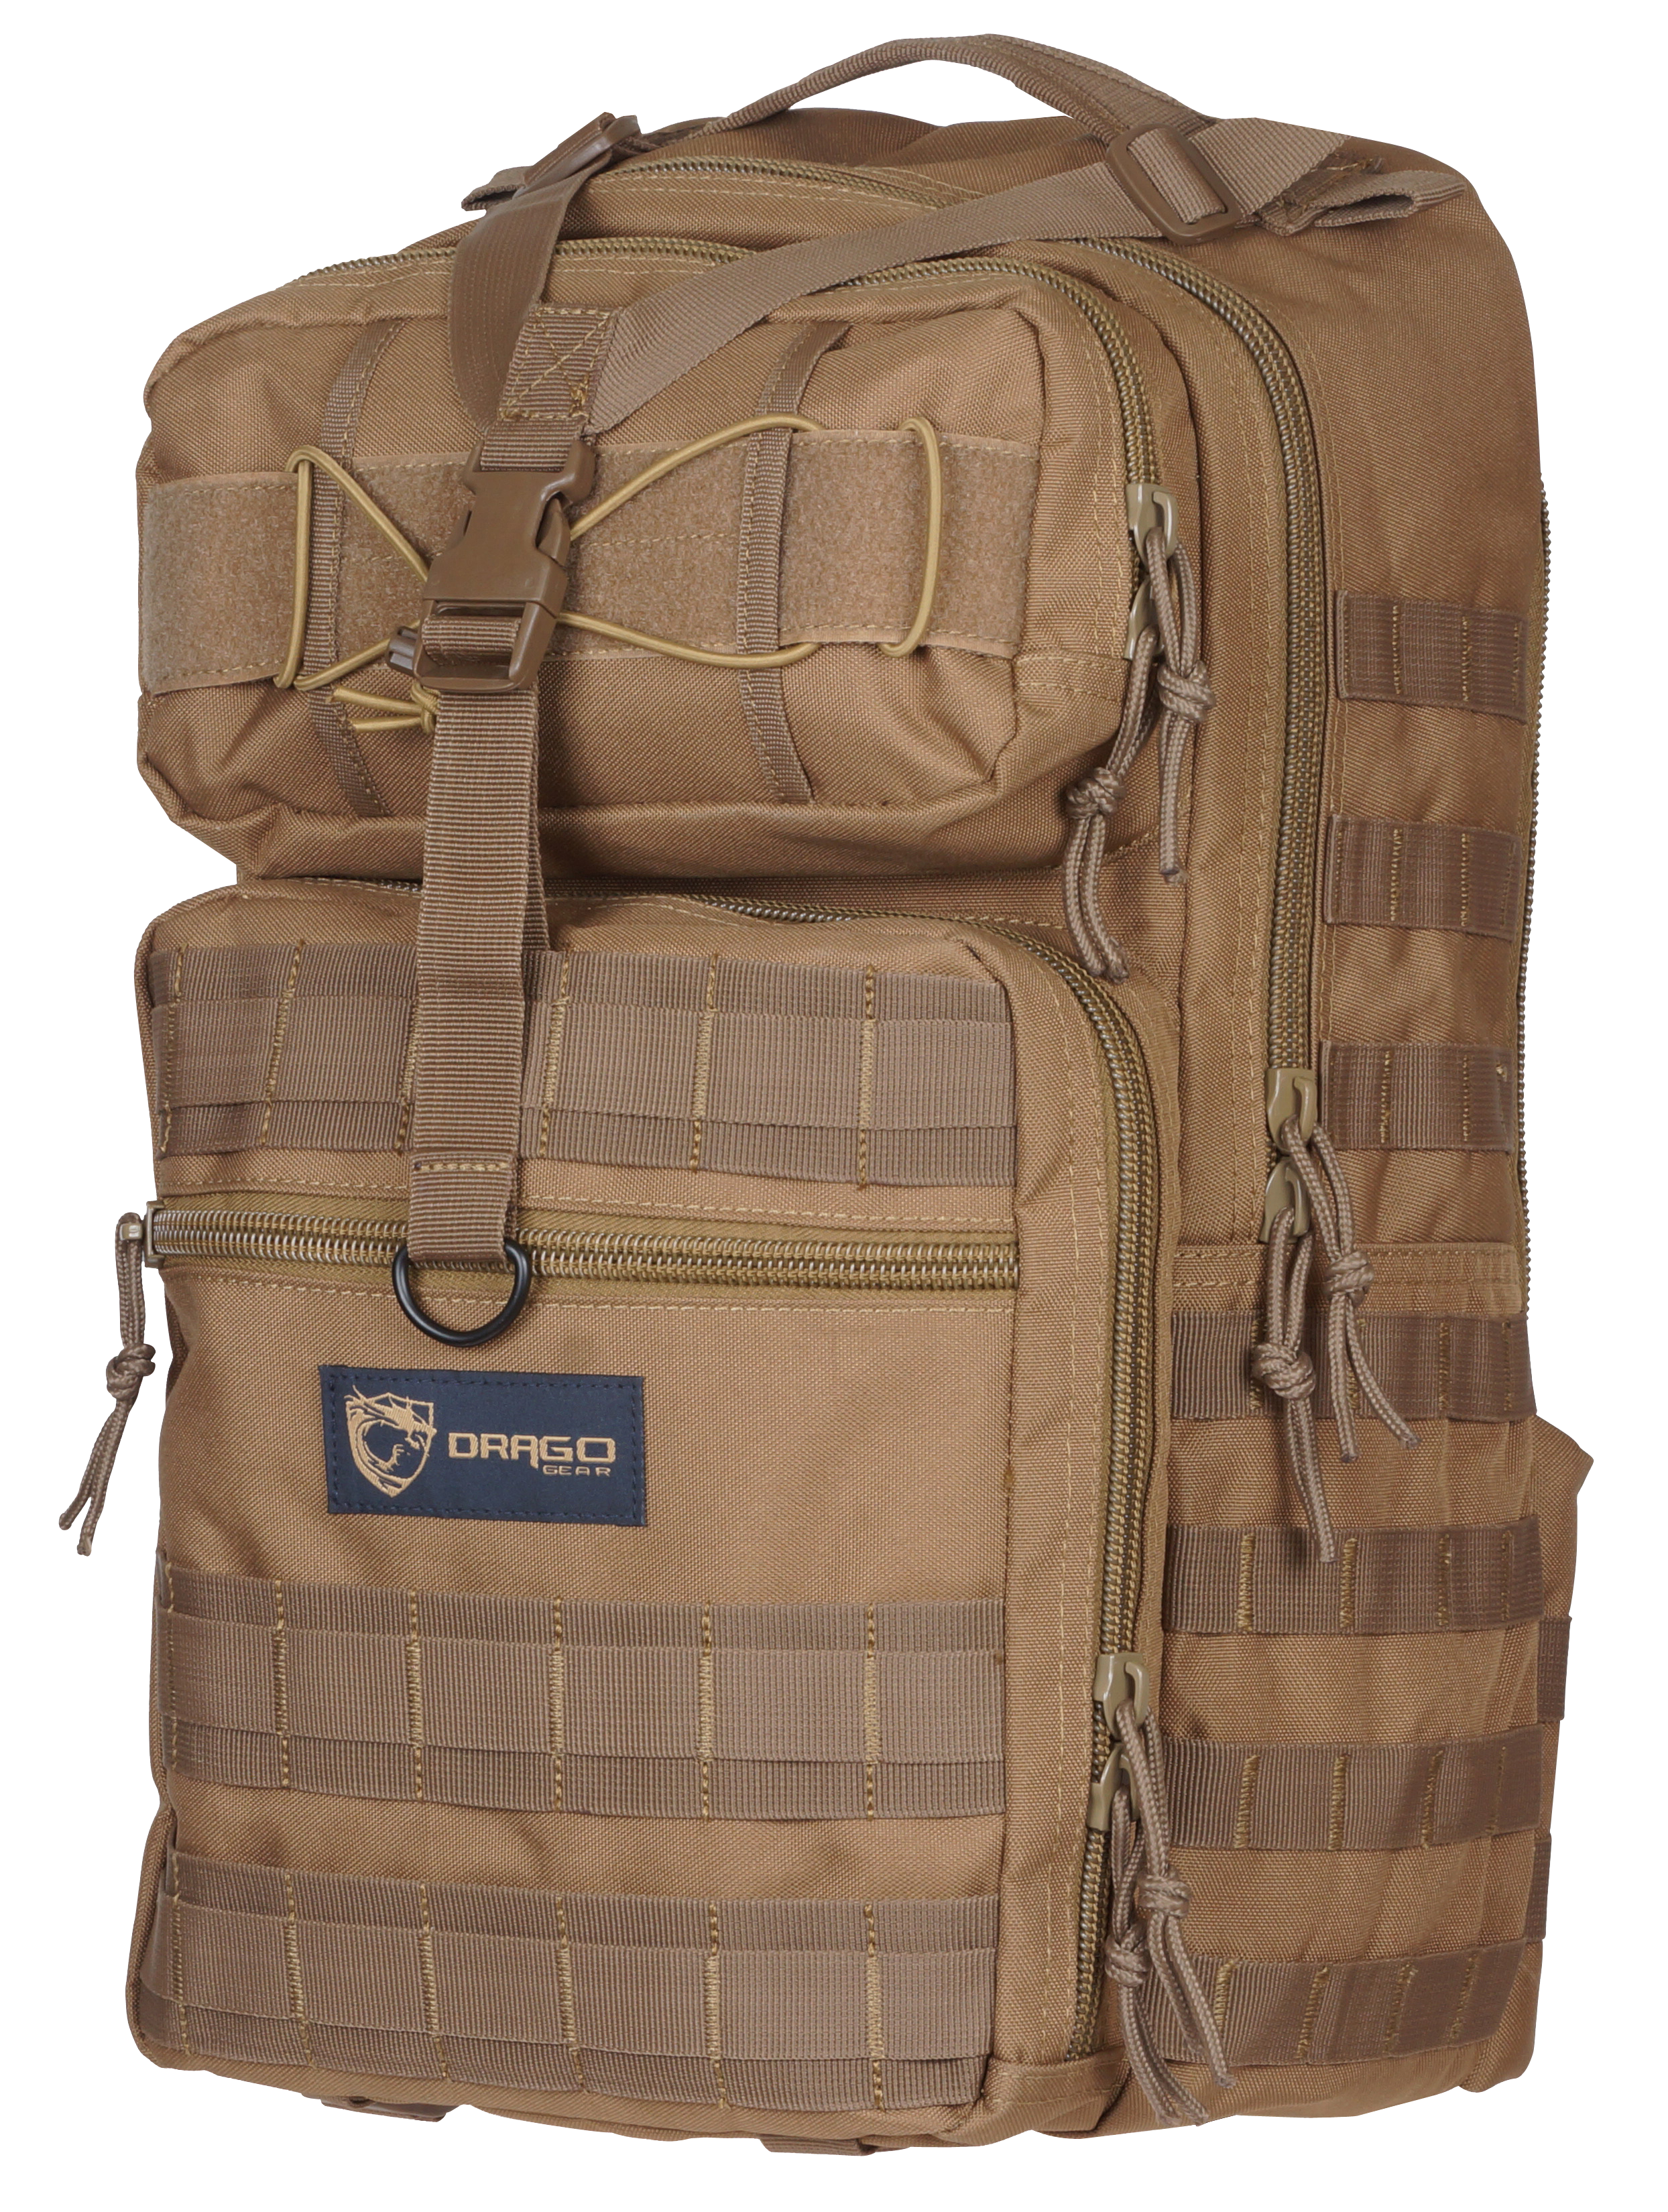 Drago 14308TN Atlus Sling Pack Backpack Tactical 600D Polyester 19